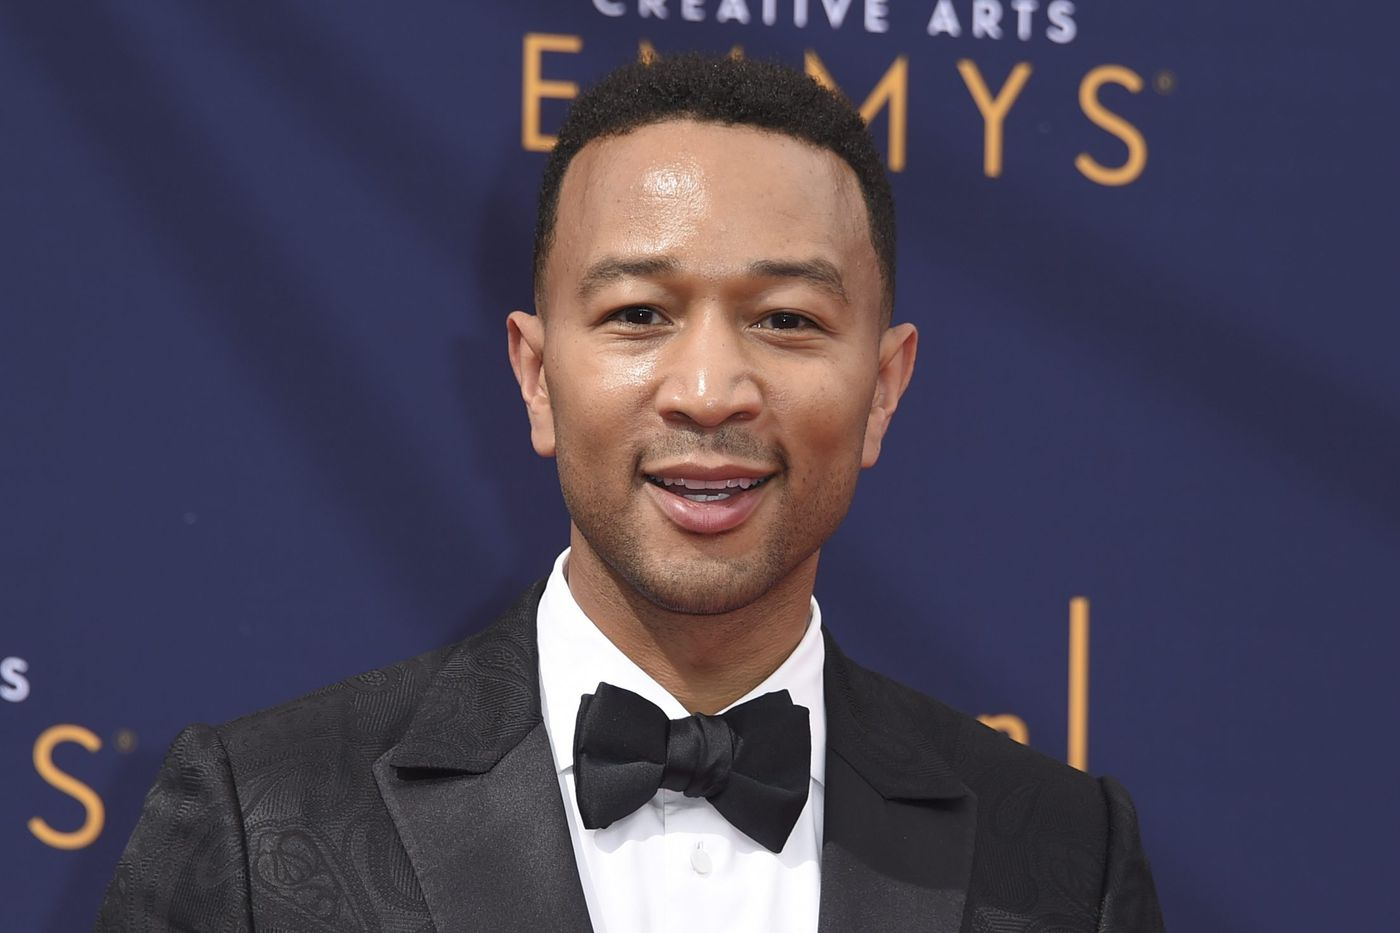 John Legend becomes first black man to earn EGOT status